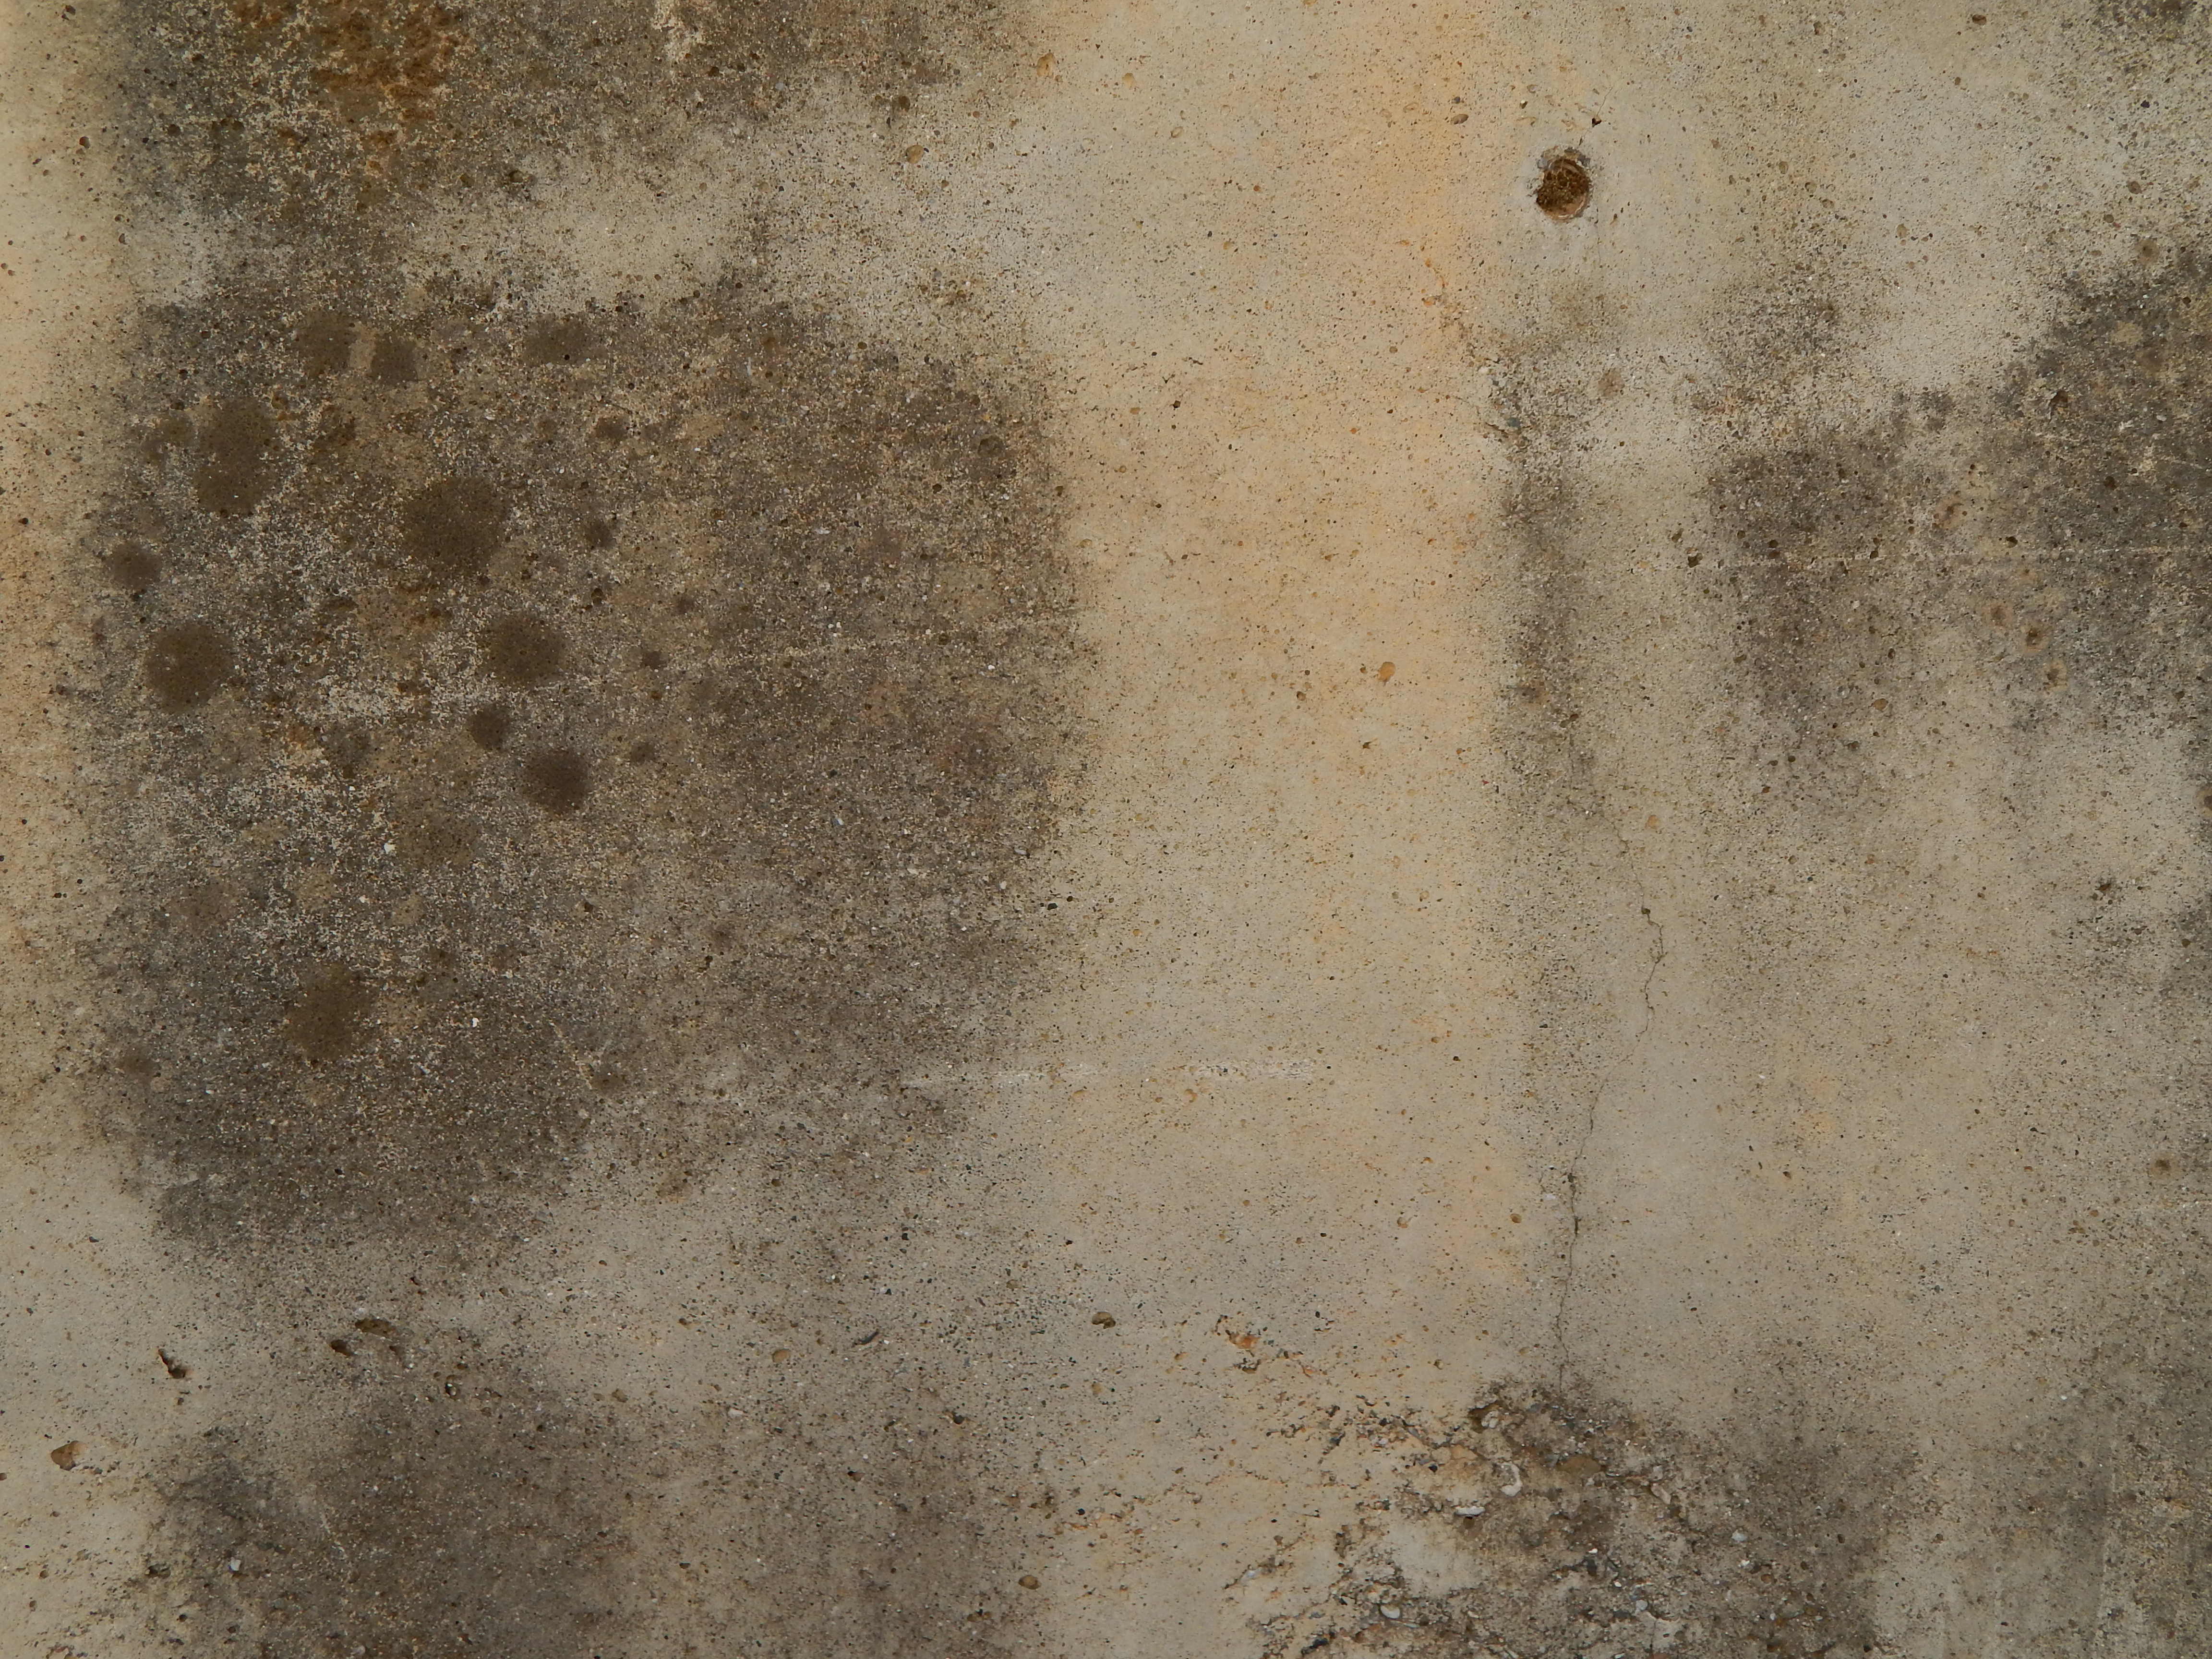 Mold Removal Services in Moody and St. Clair County, AL